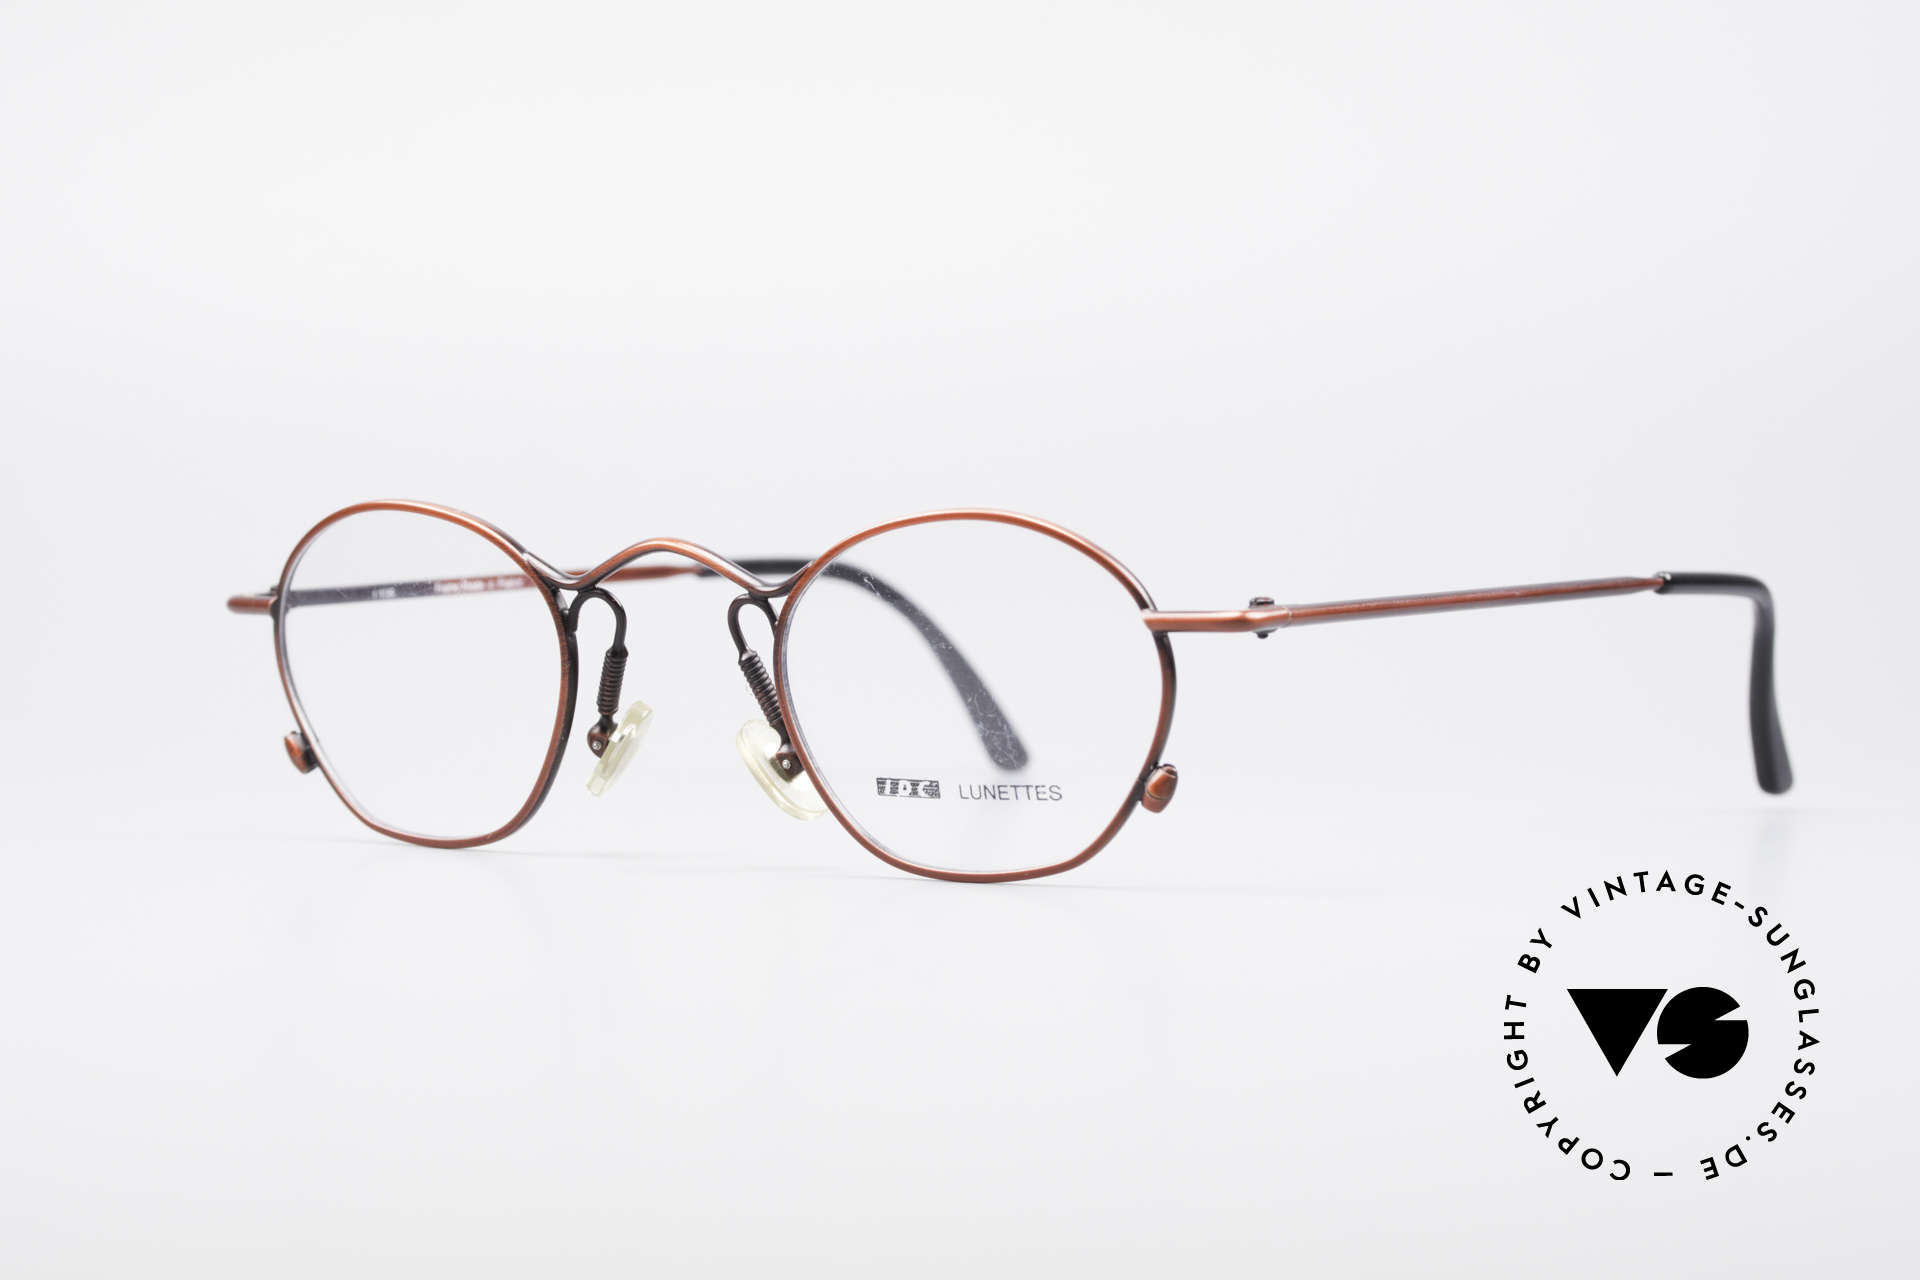 IDC 101 True Vintage No Retro Glasses, timeless unisex model with elegant frame-coloring, Made for Men and Women